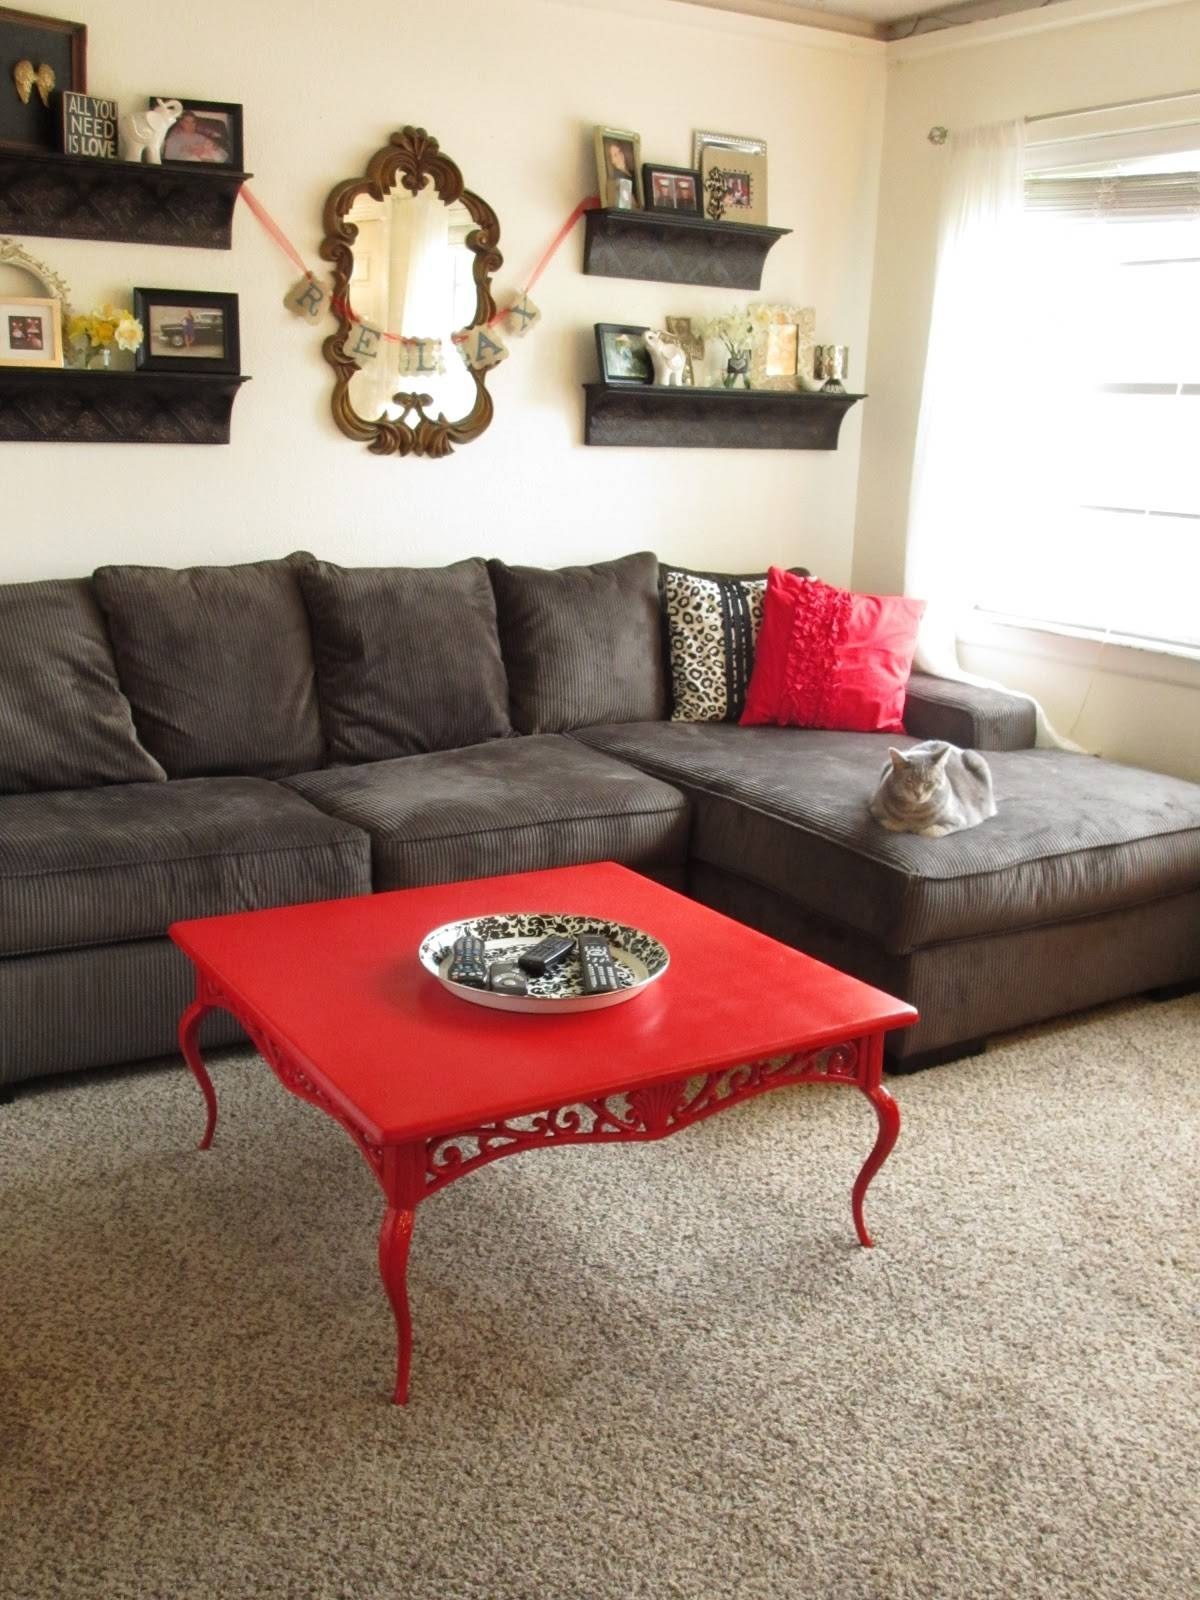 How To Decorate A Living Room With A Red Coffee Table — The Home pertaining to Red Coffee Table (Image 14 of 30)